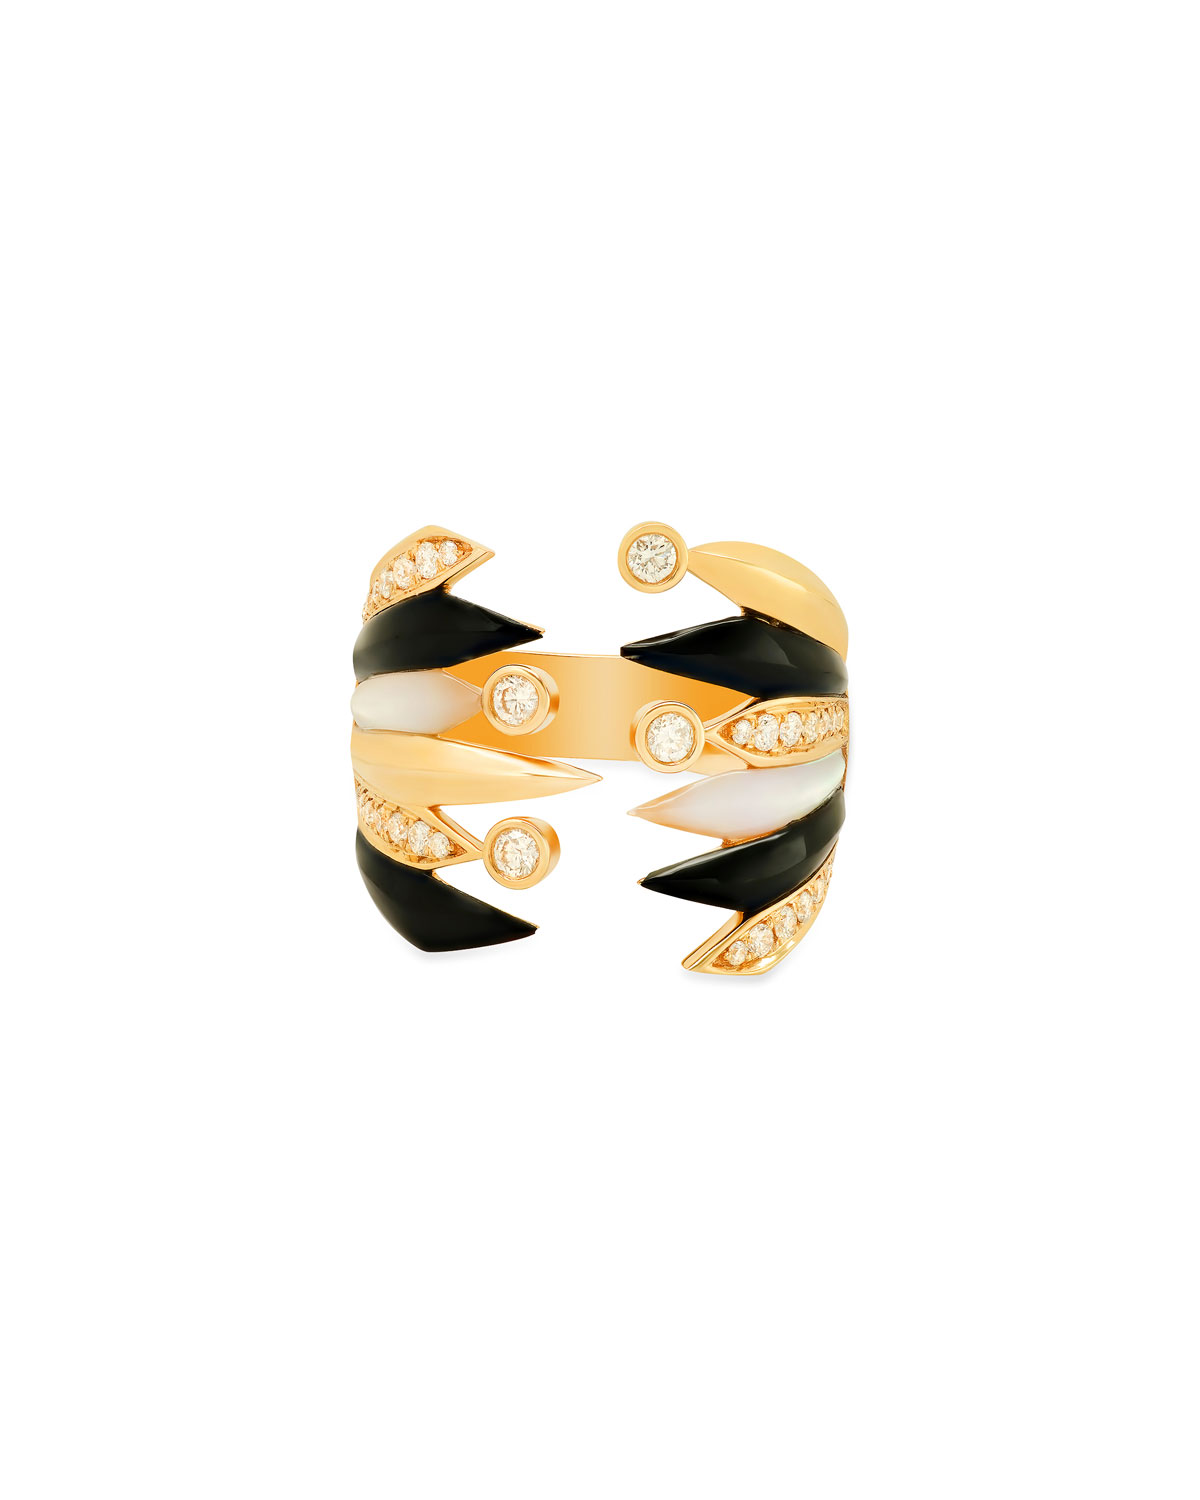 18K Penacho Large Ring in Onyx and Mother-of-Pearl